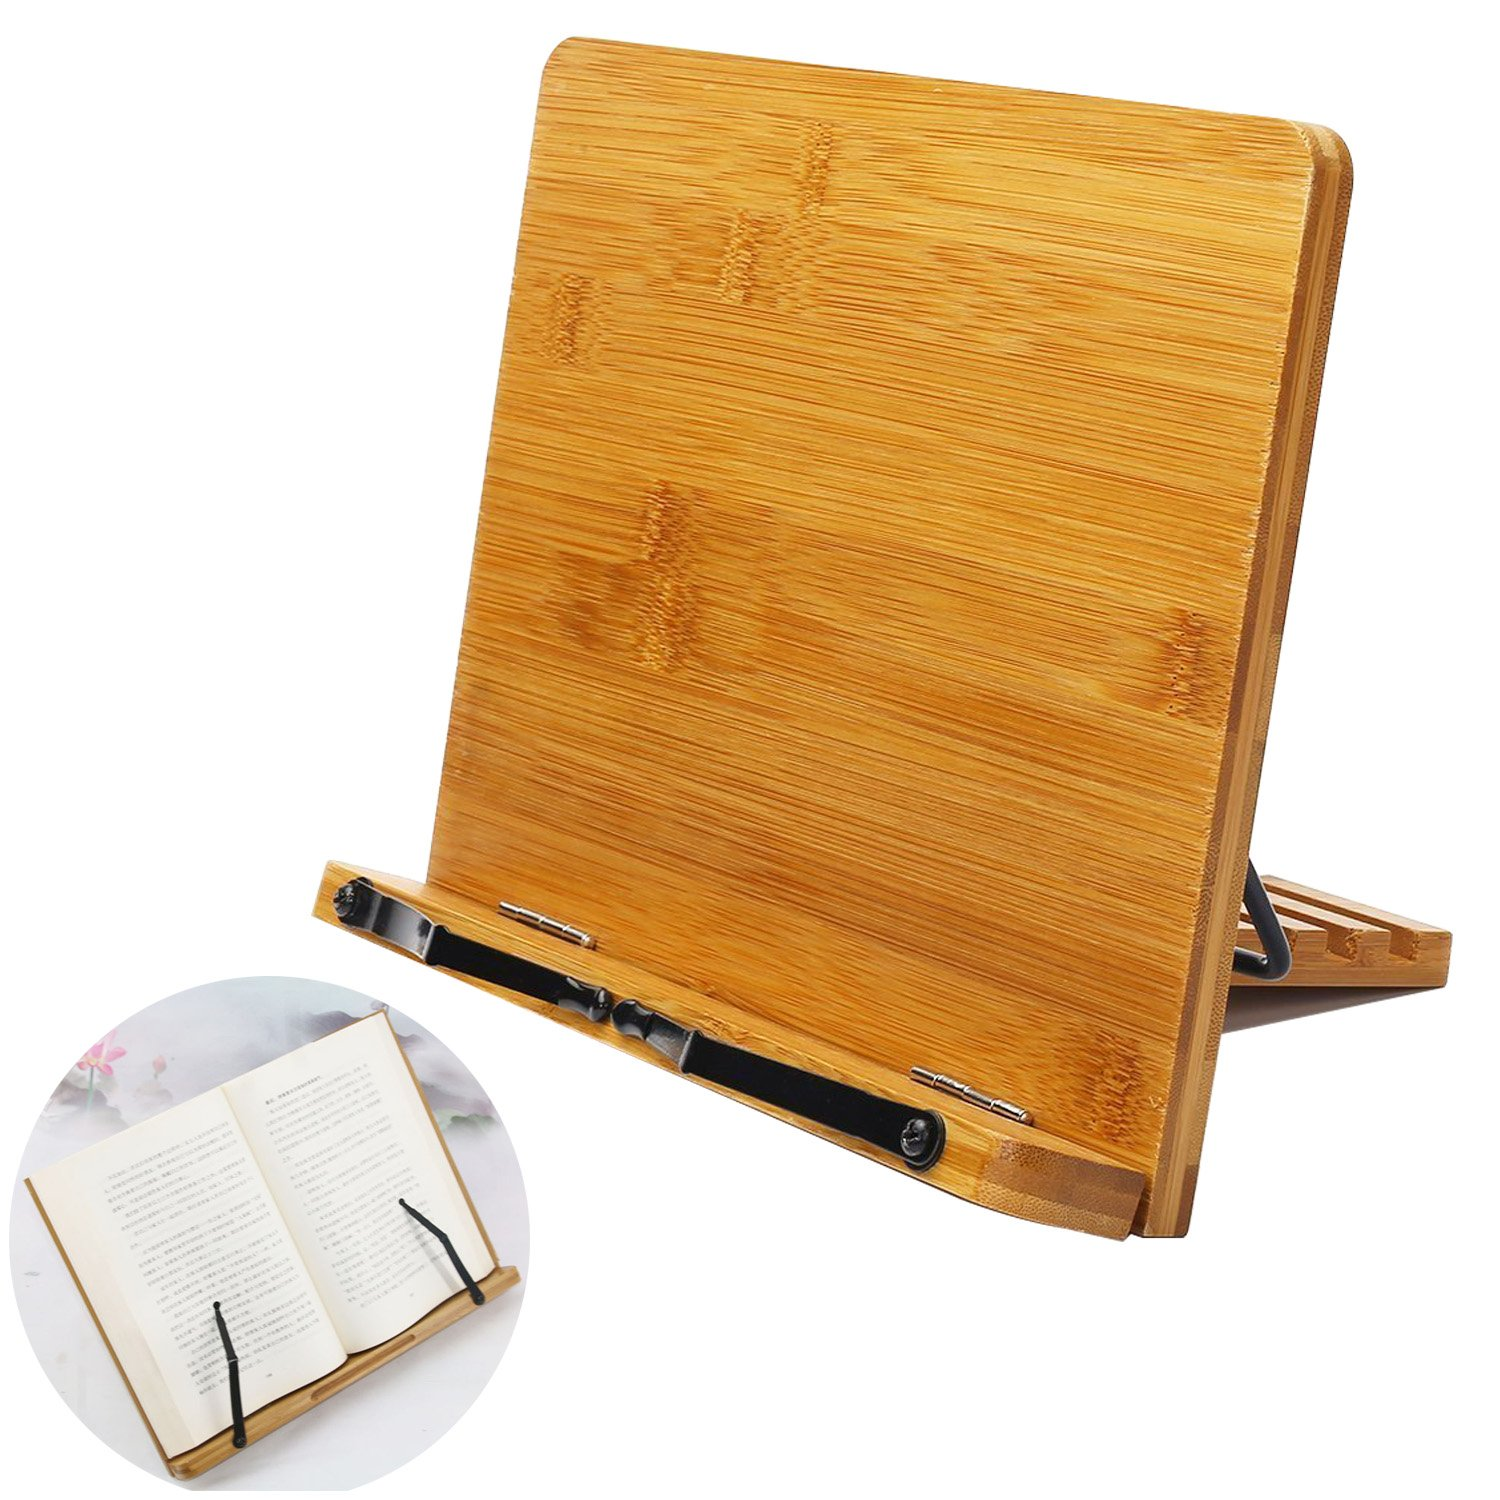 Bamboo Book Holder, Aggice Adjustable Book Holder with Tray and Page Paper Clips, Protable Bookstand Hands Free Book Stand (Bamboo)